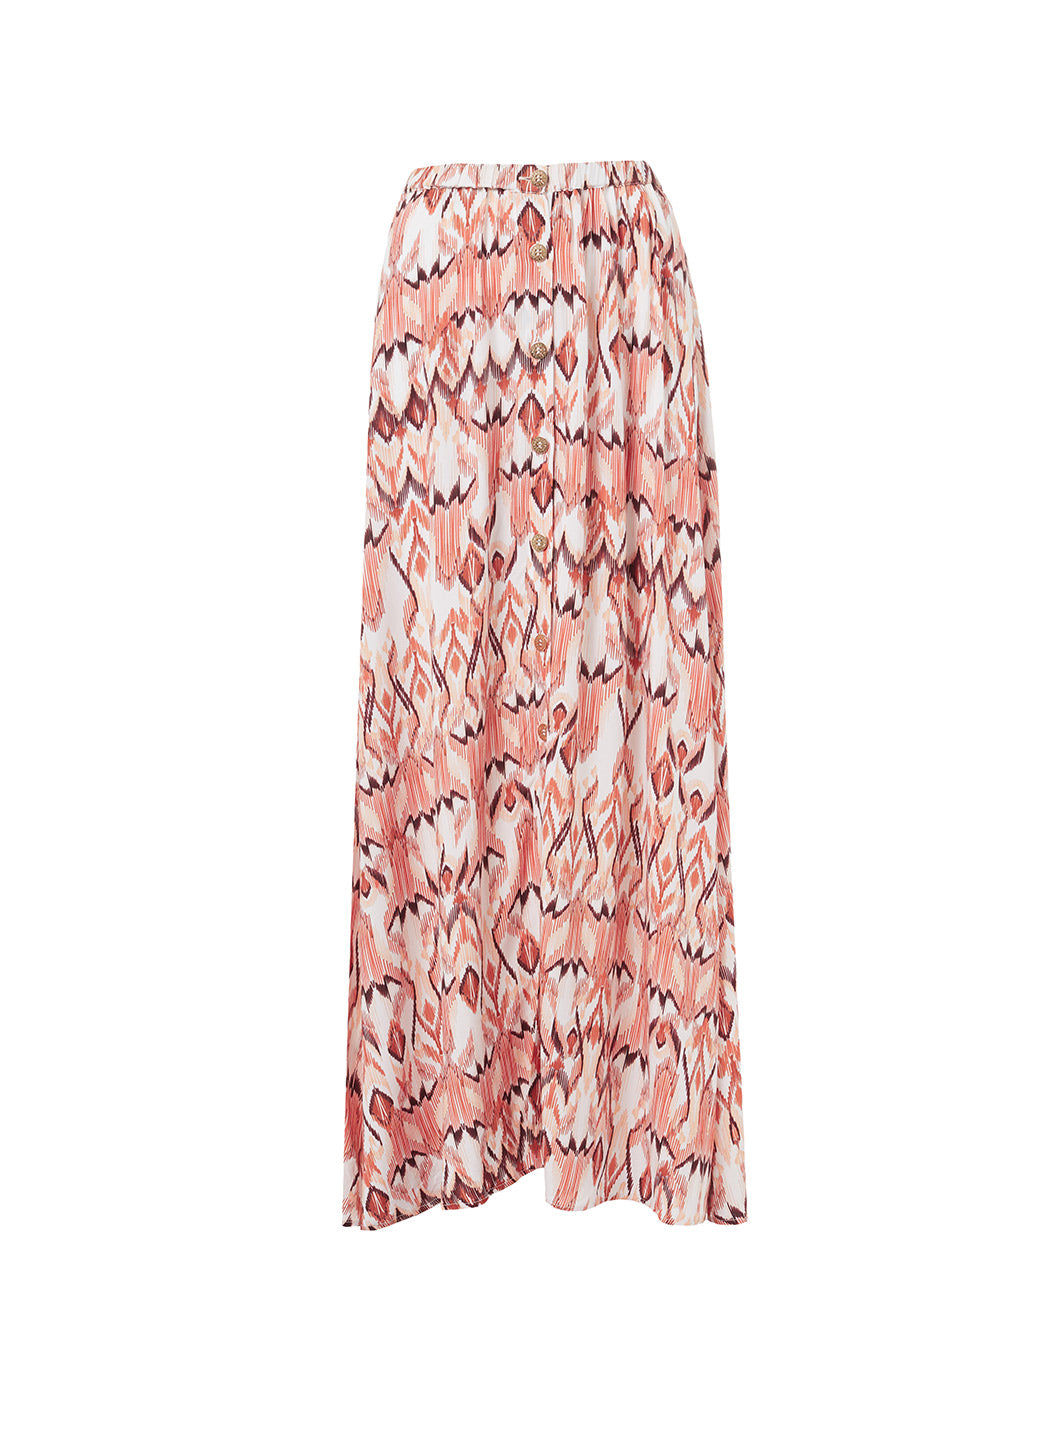 Daisy Ikat Button-Down Maxi Skirt - Melissa Odabash Beachwear